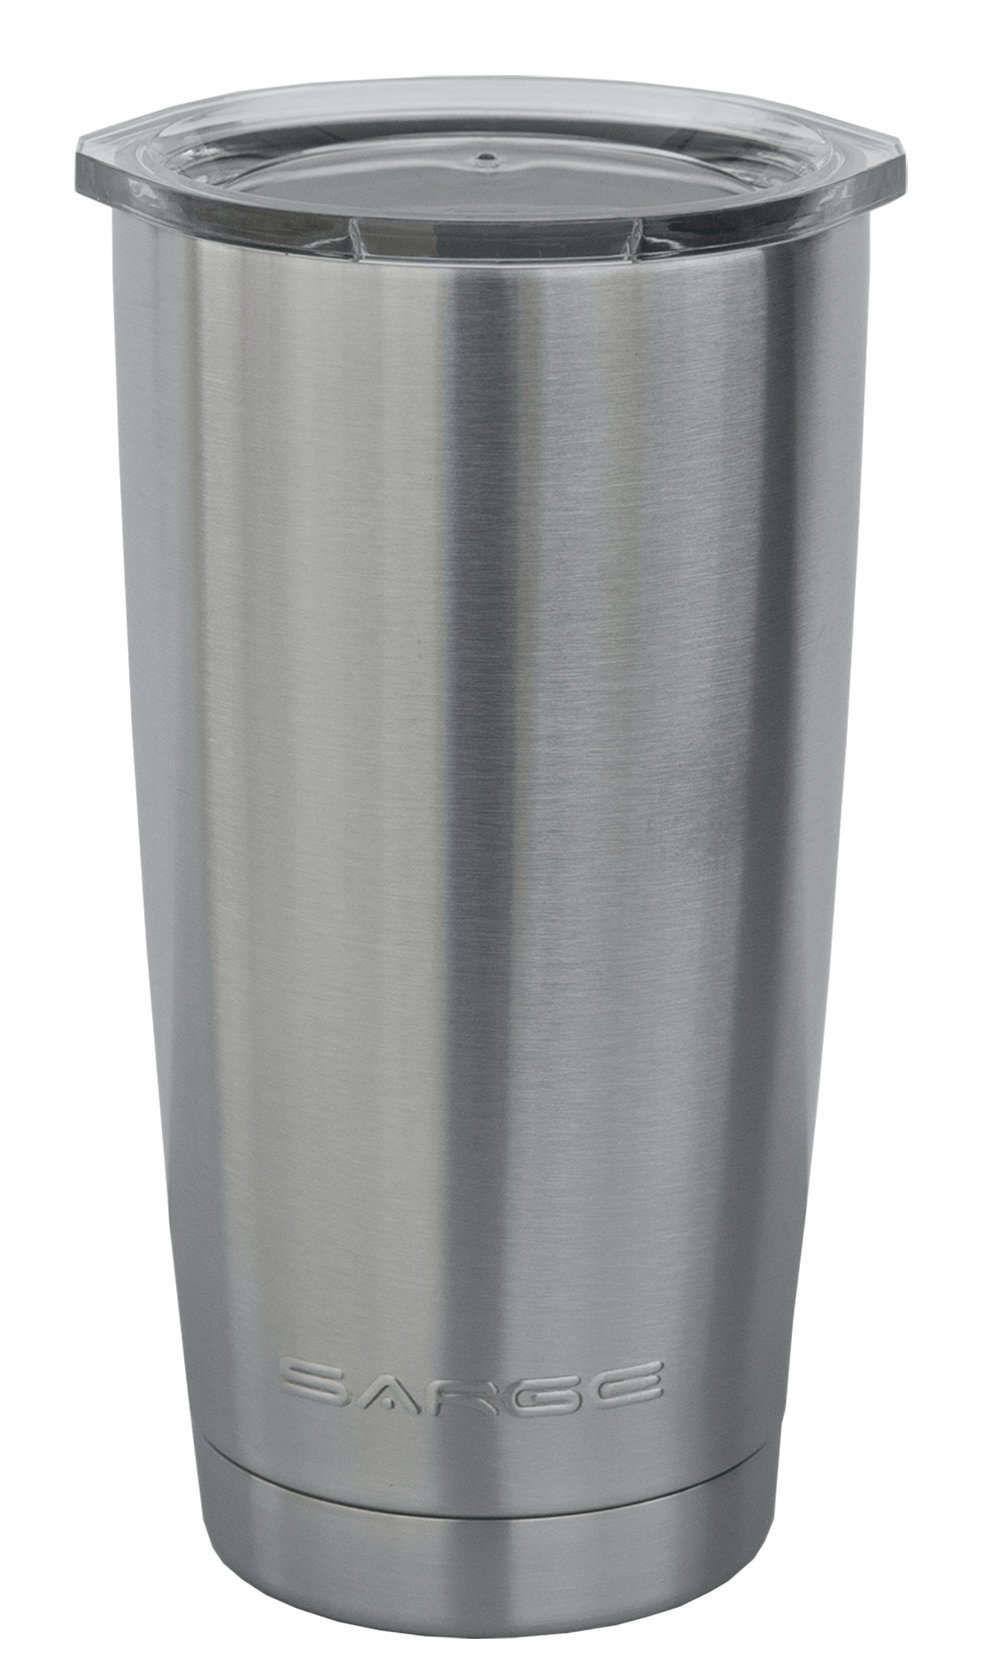 Sarge Knives DC-20 20 oz Stainless steel Tumbler with Shatterproof Lid and Desert Cup